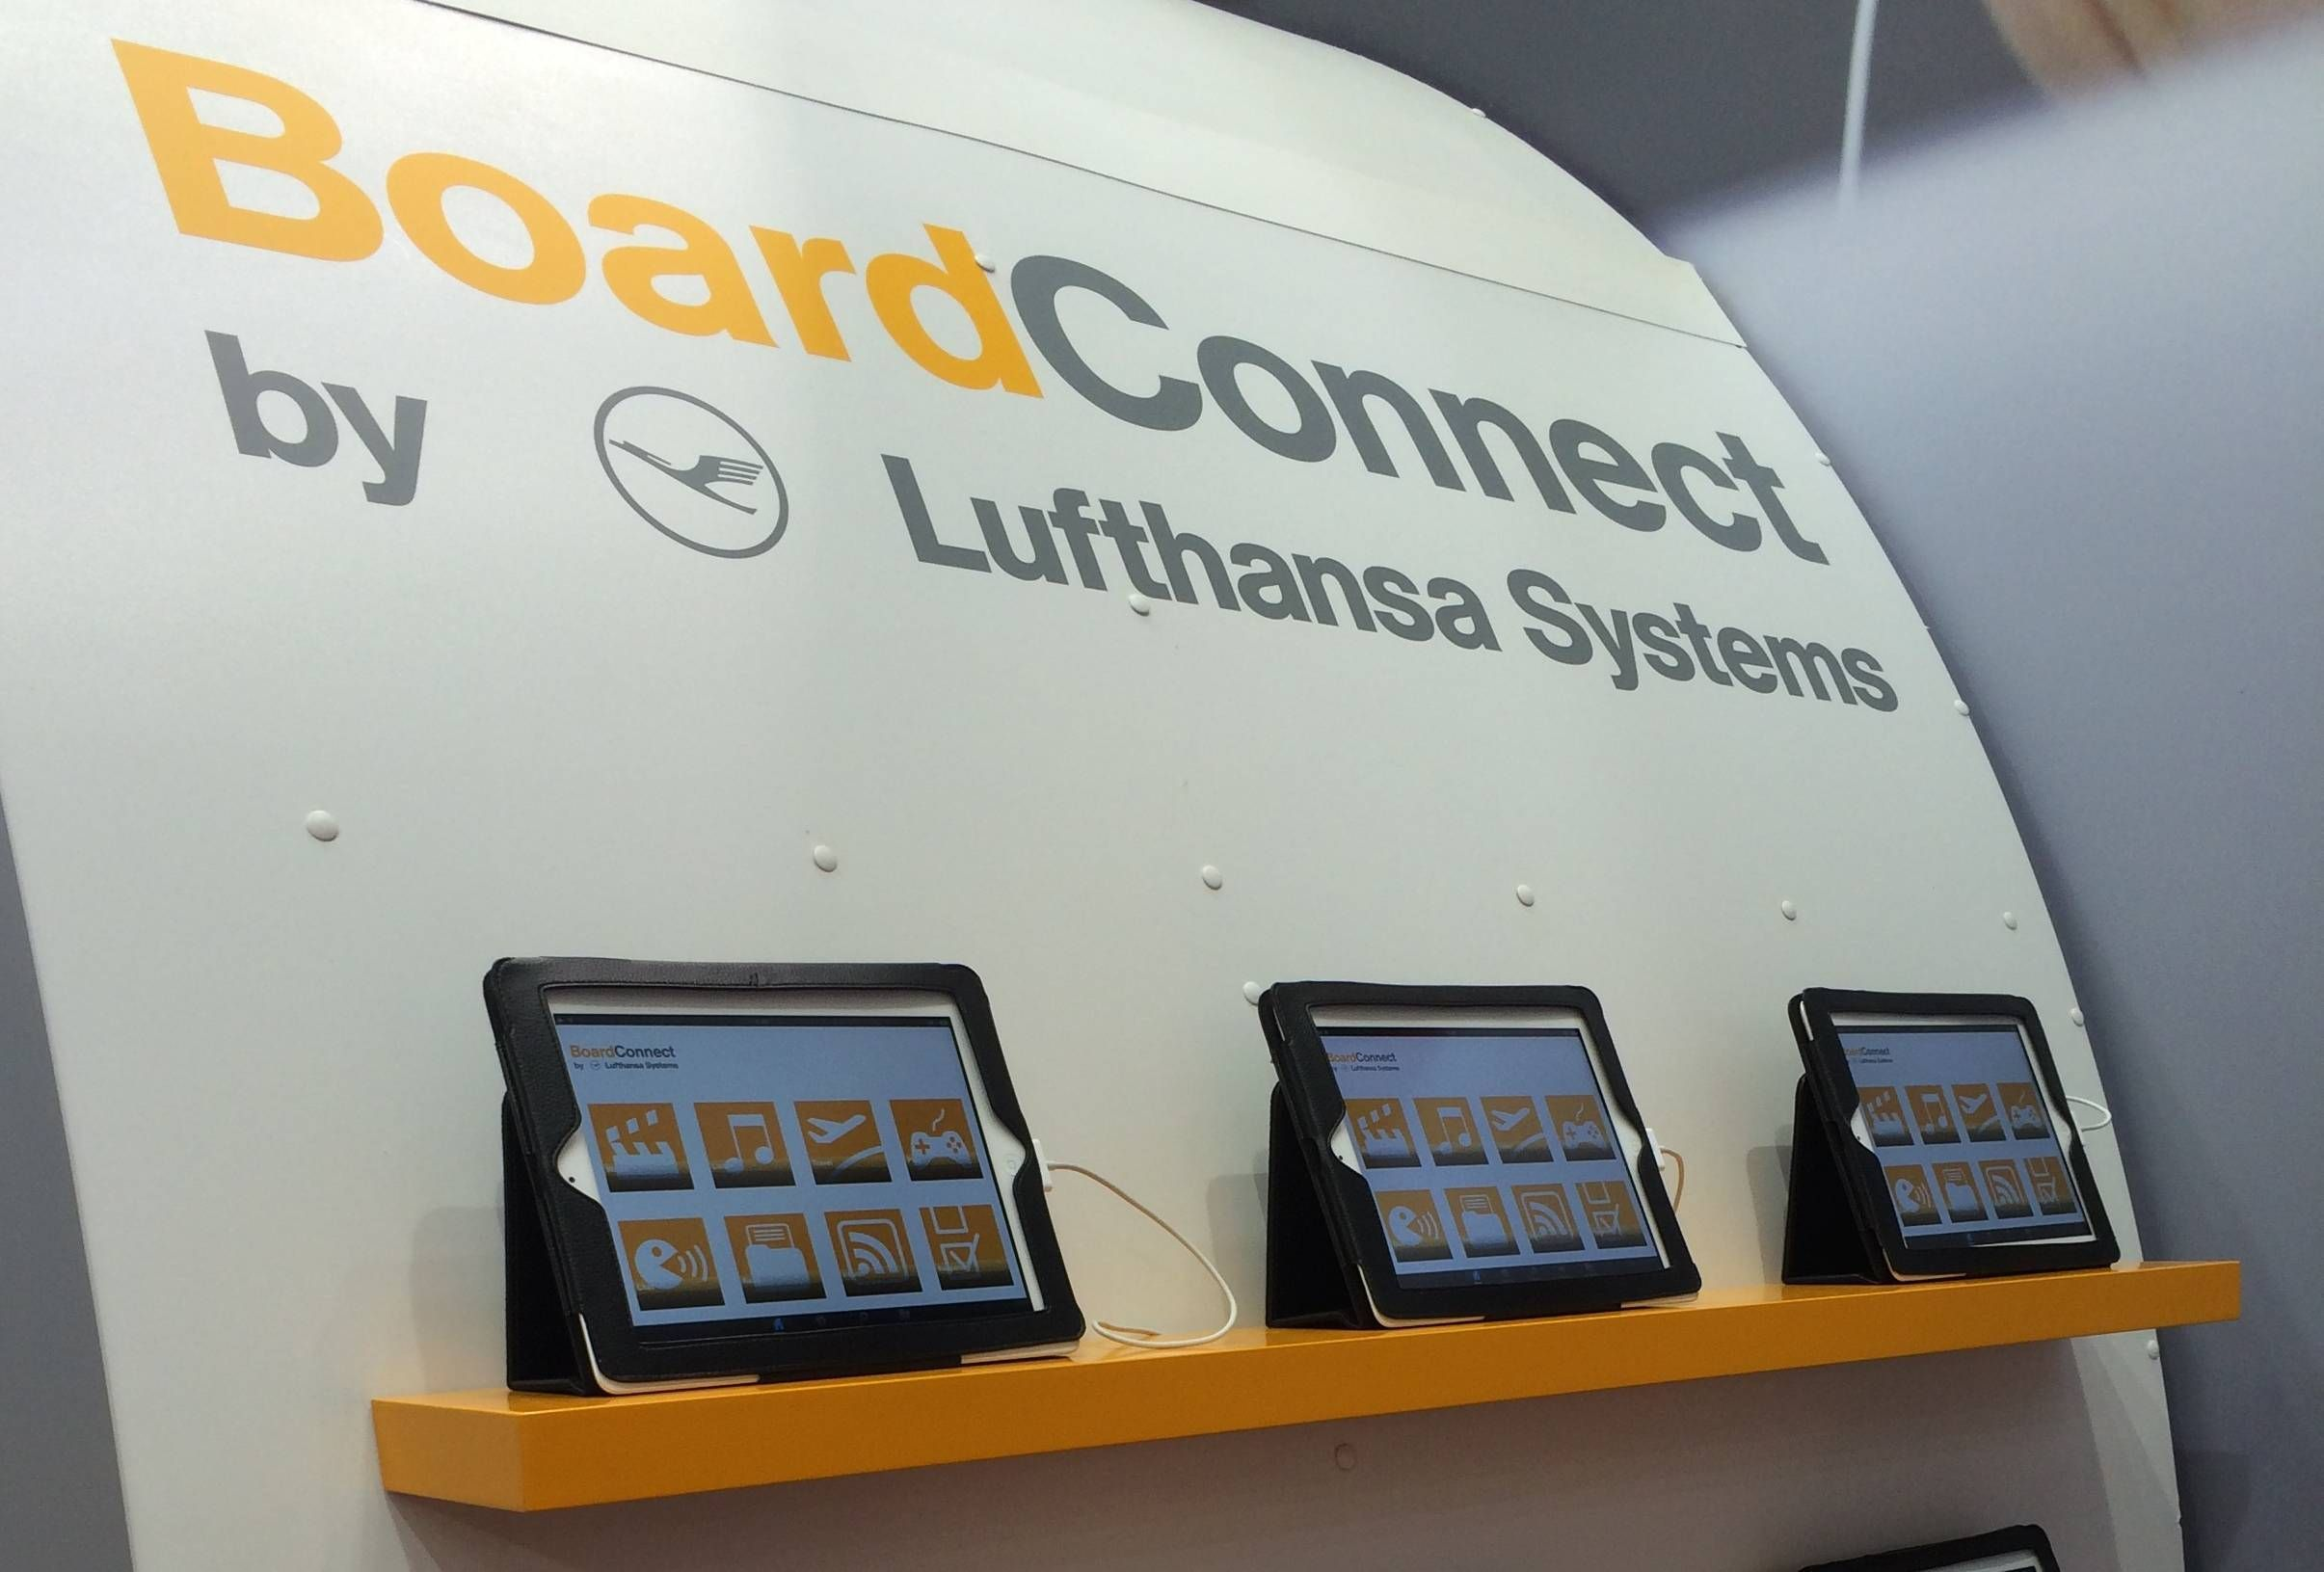 lufthansa board connect